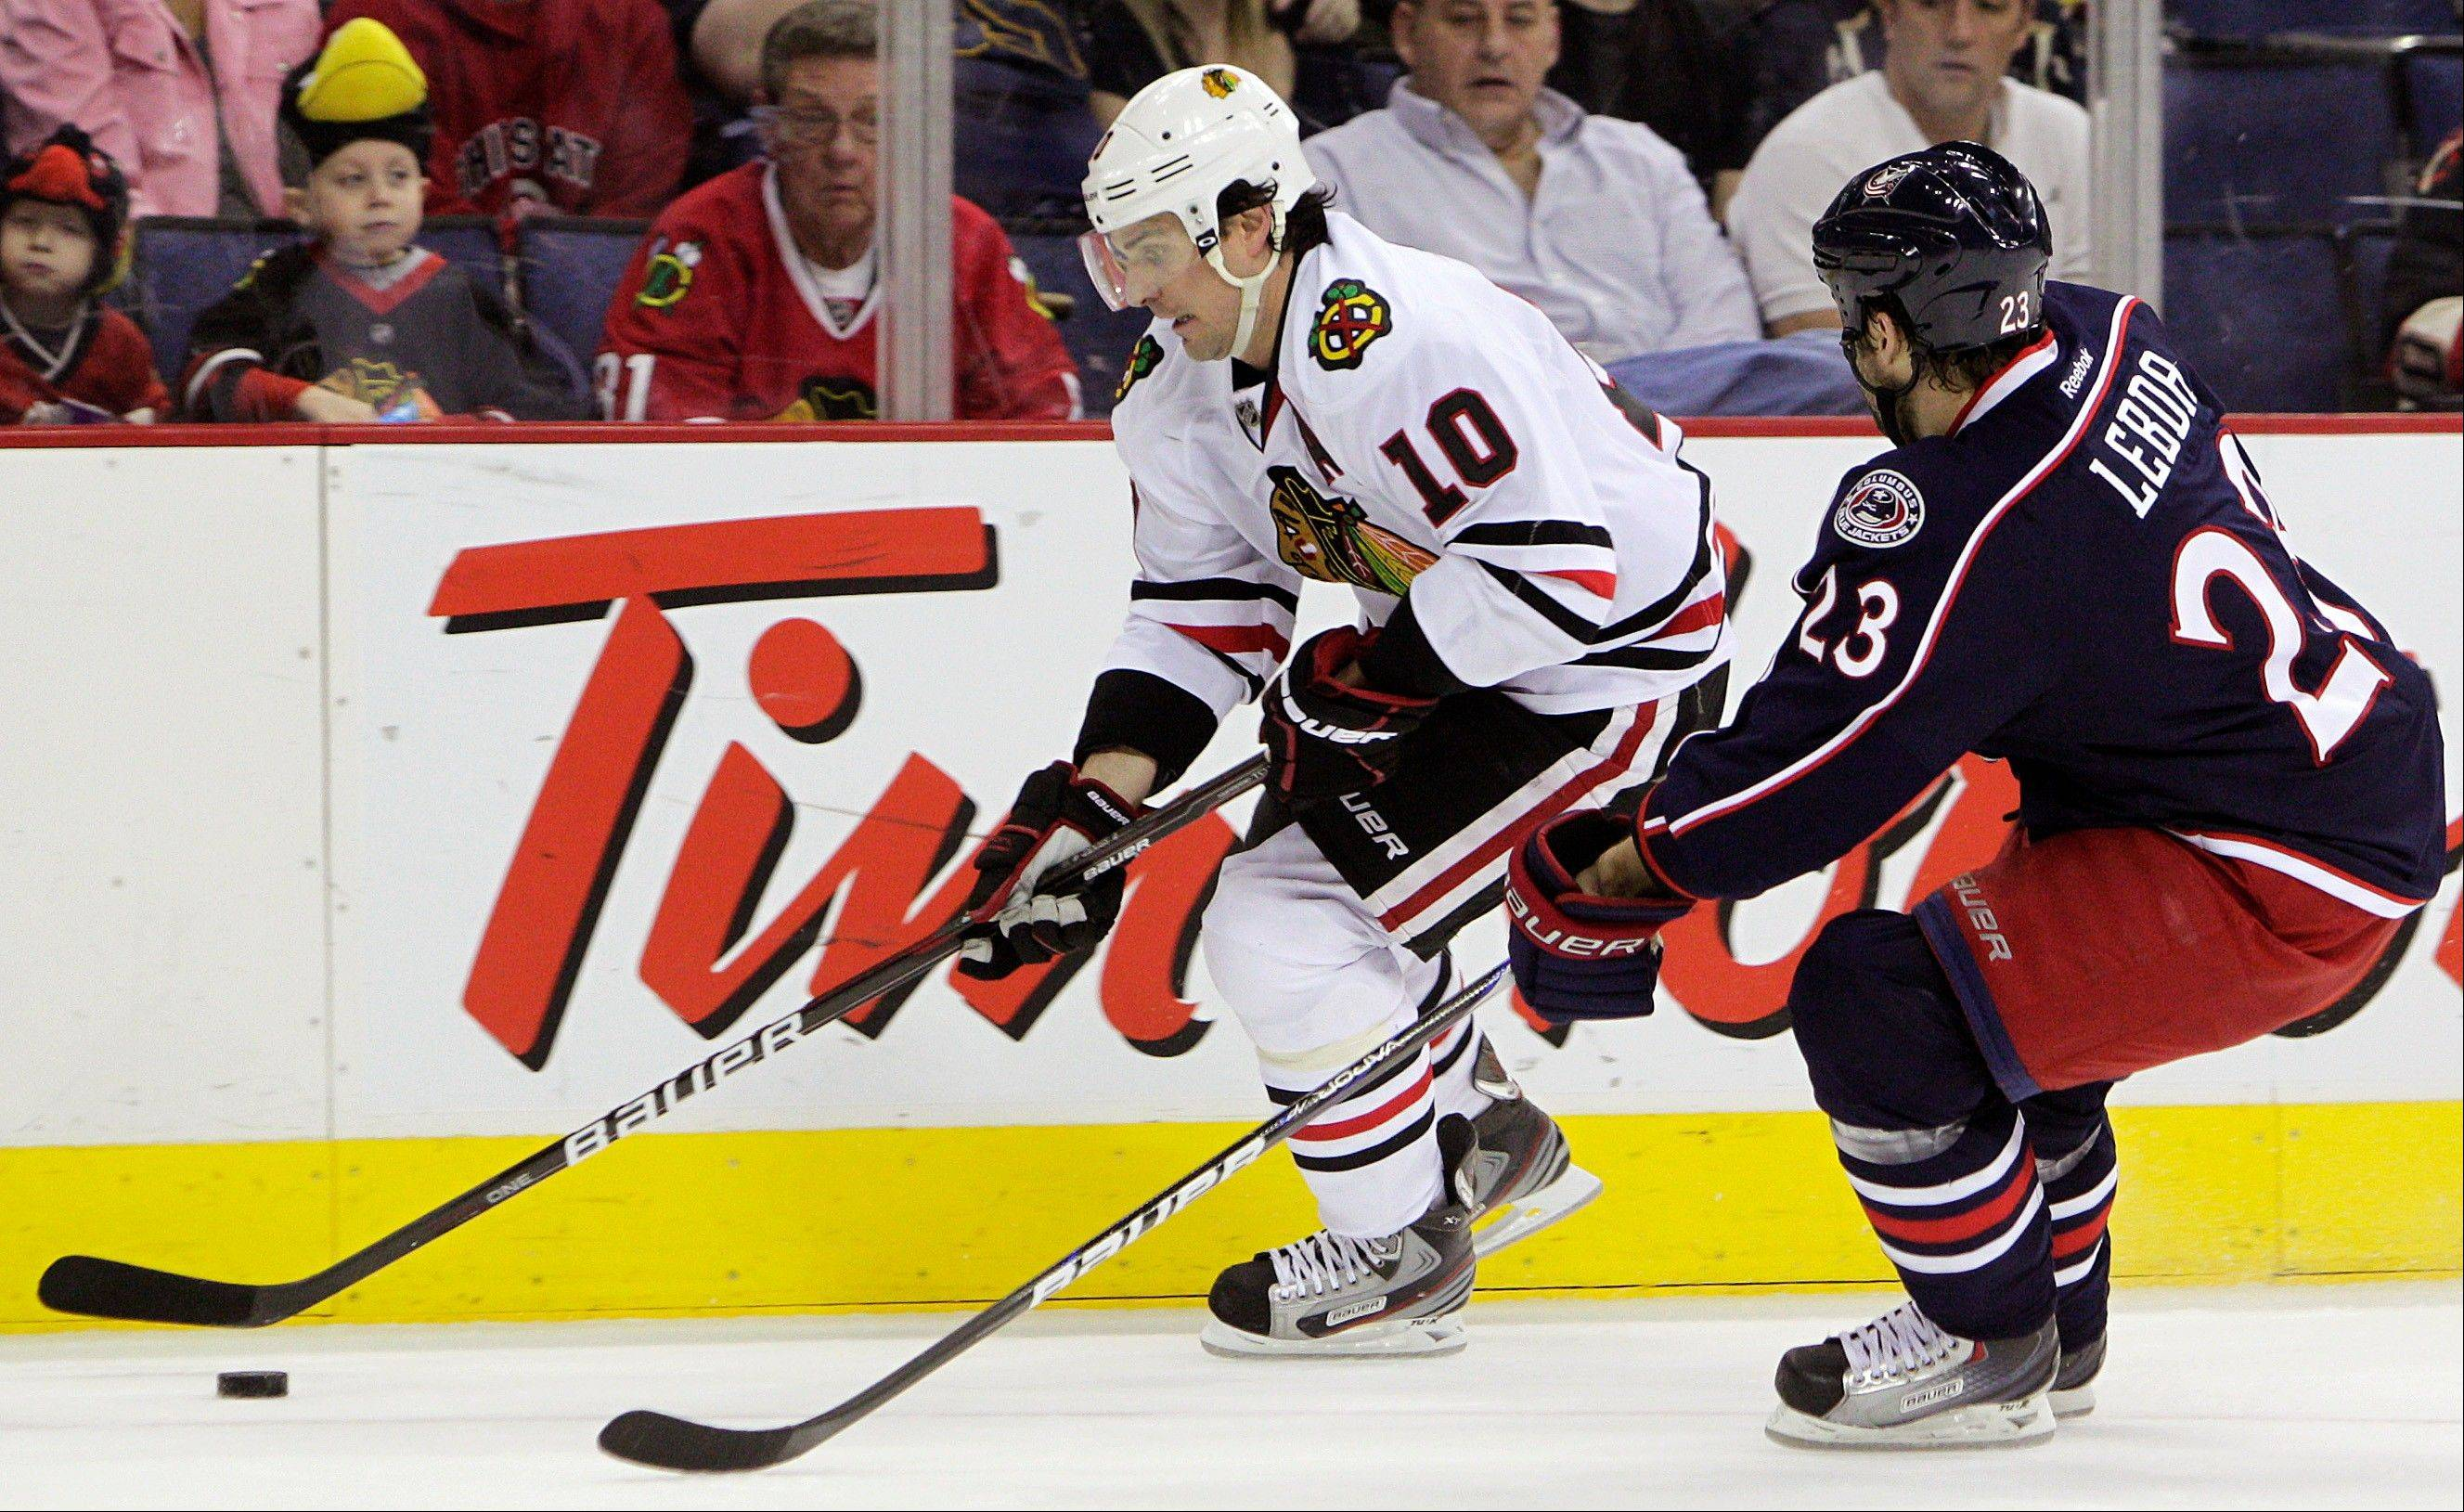 Blackhawks forward Patrick Sharp carries the puck up ice as Columbus Blue Jackets' Brett Lebda defends Tuesday during the first period.